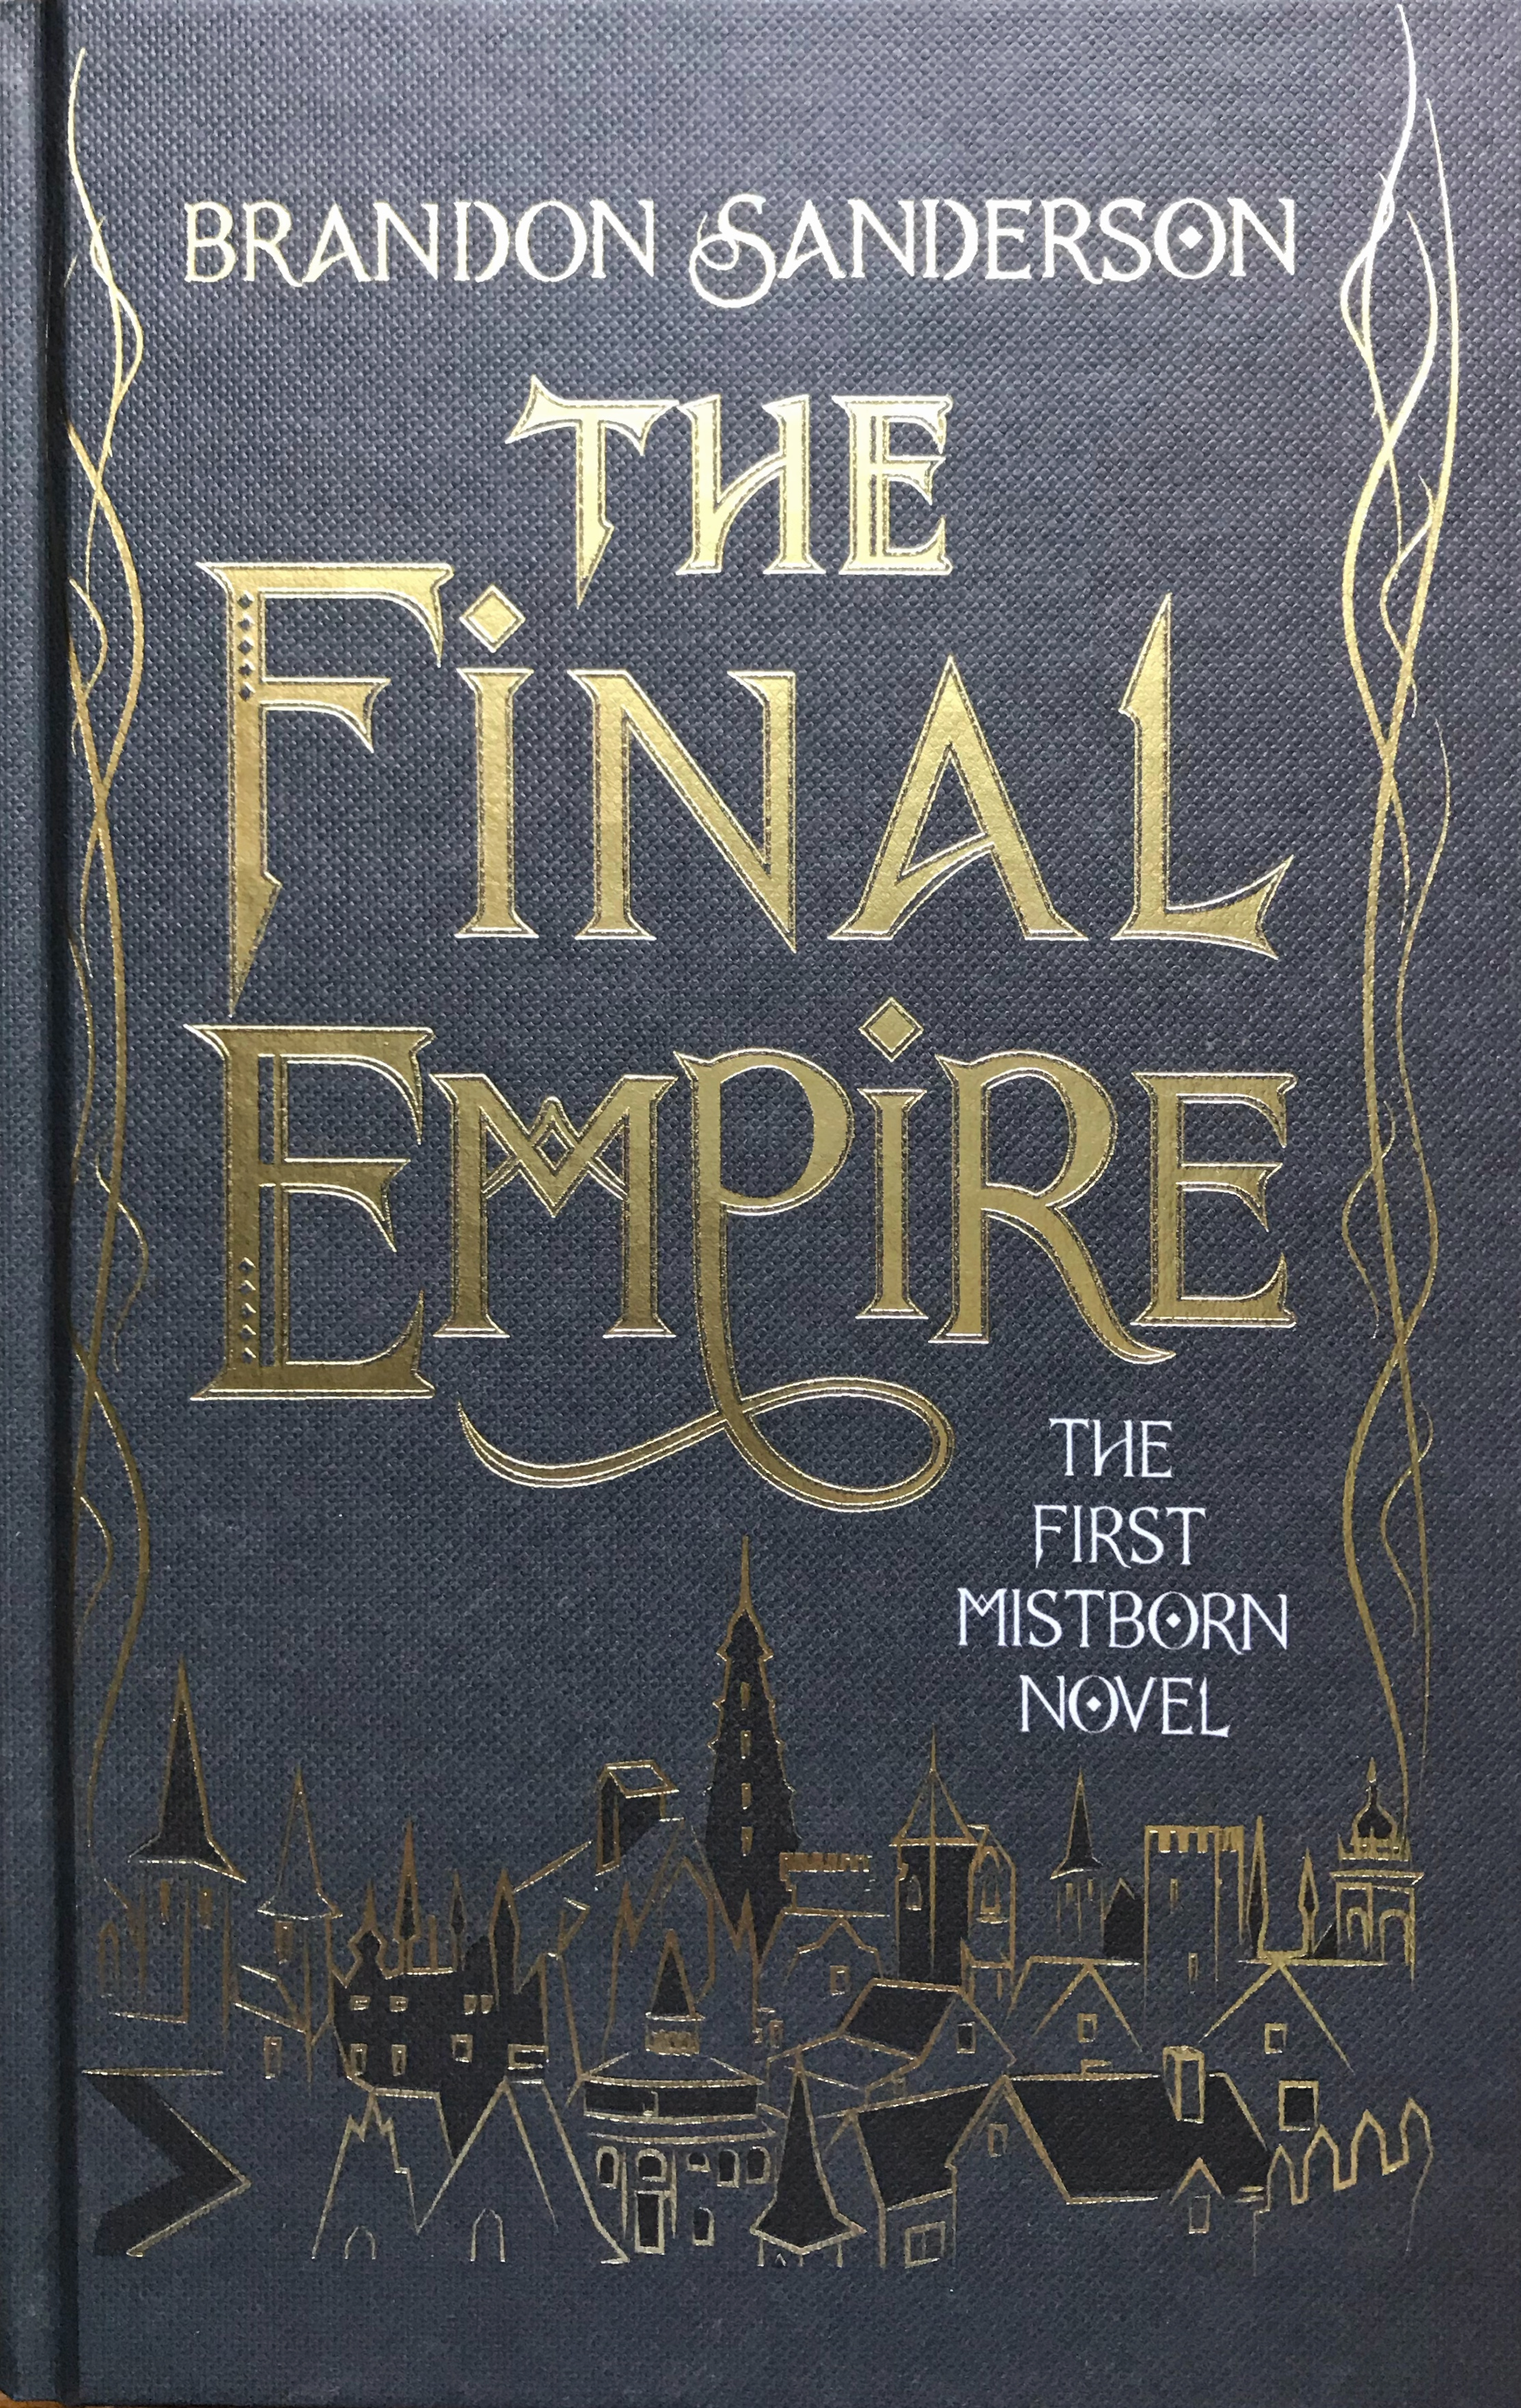 Image for MISTBORN: THE FINAL EMPIRE - 10th Anniversary, Special Edition Exclusive Signed & Numbered Only 200 copies